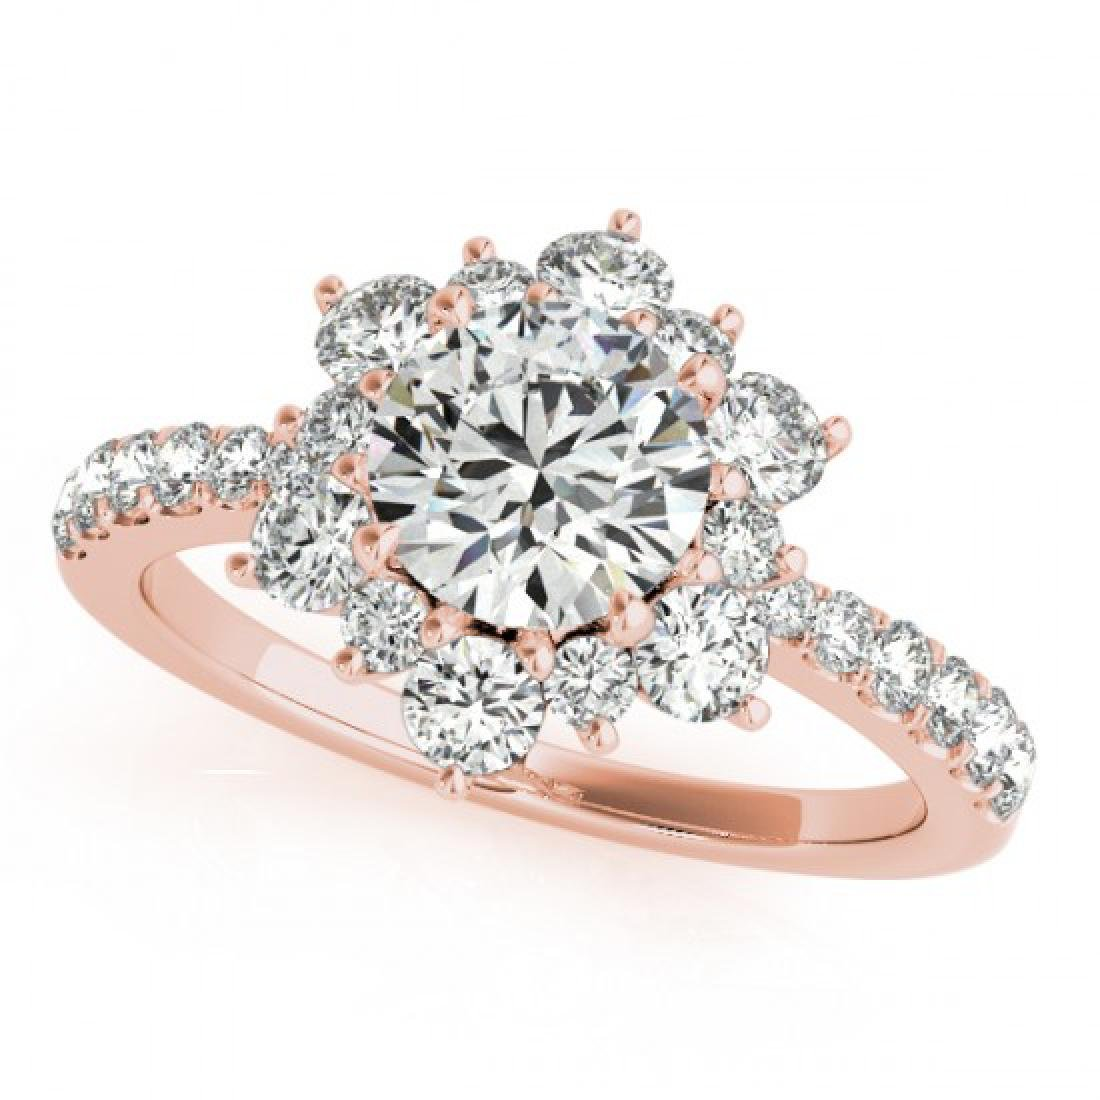 1.09 CTW Certified VS/SI Diamond Solitaire Halo Ring